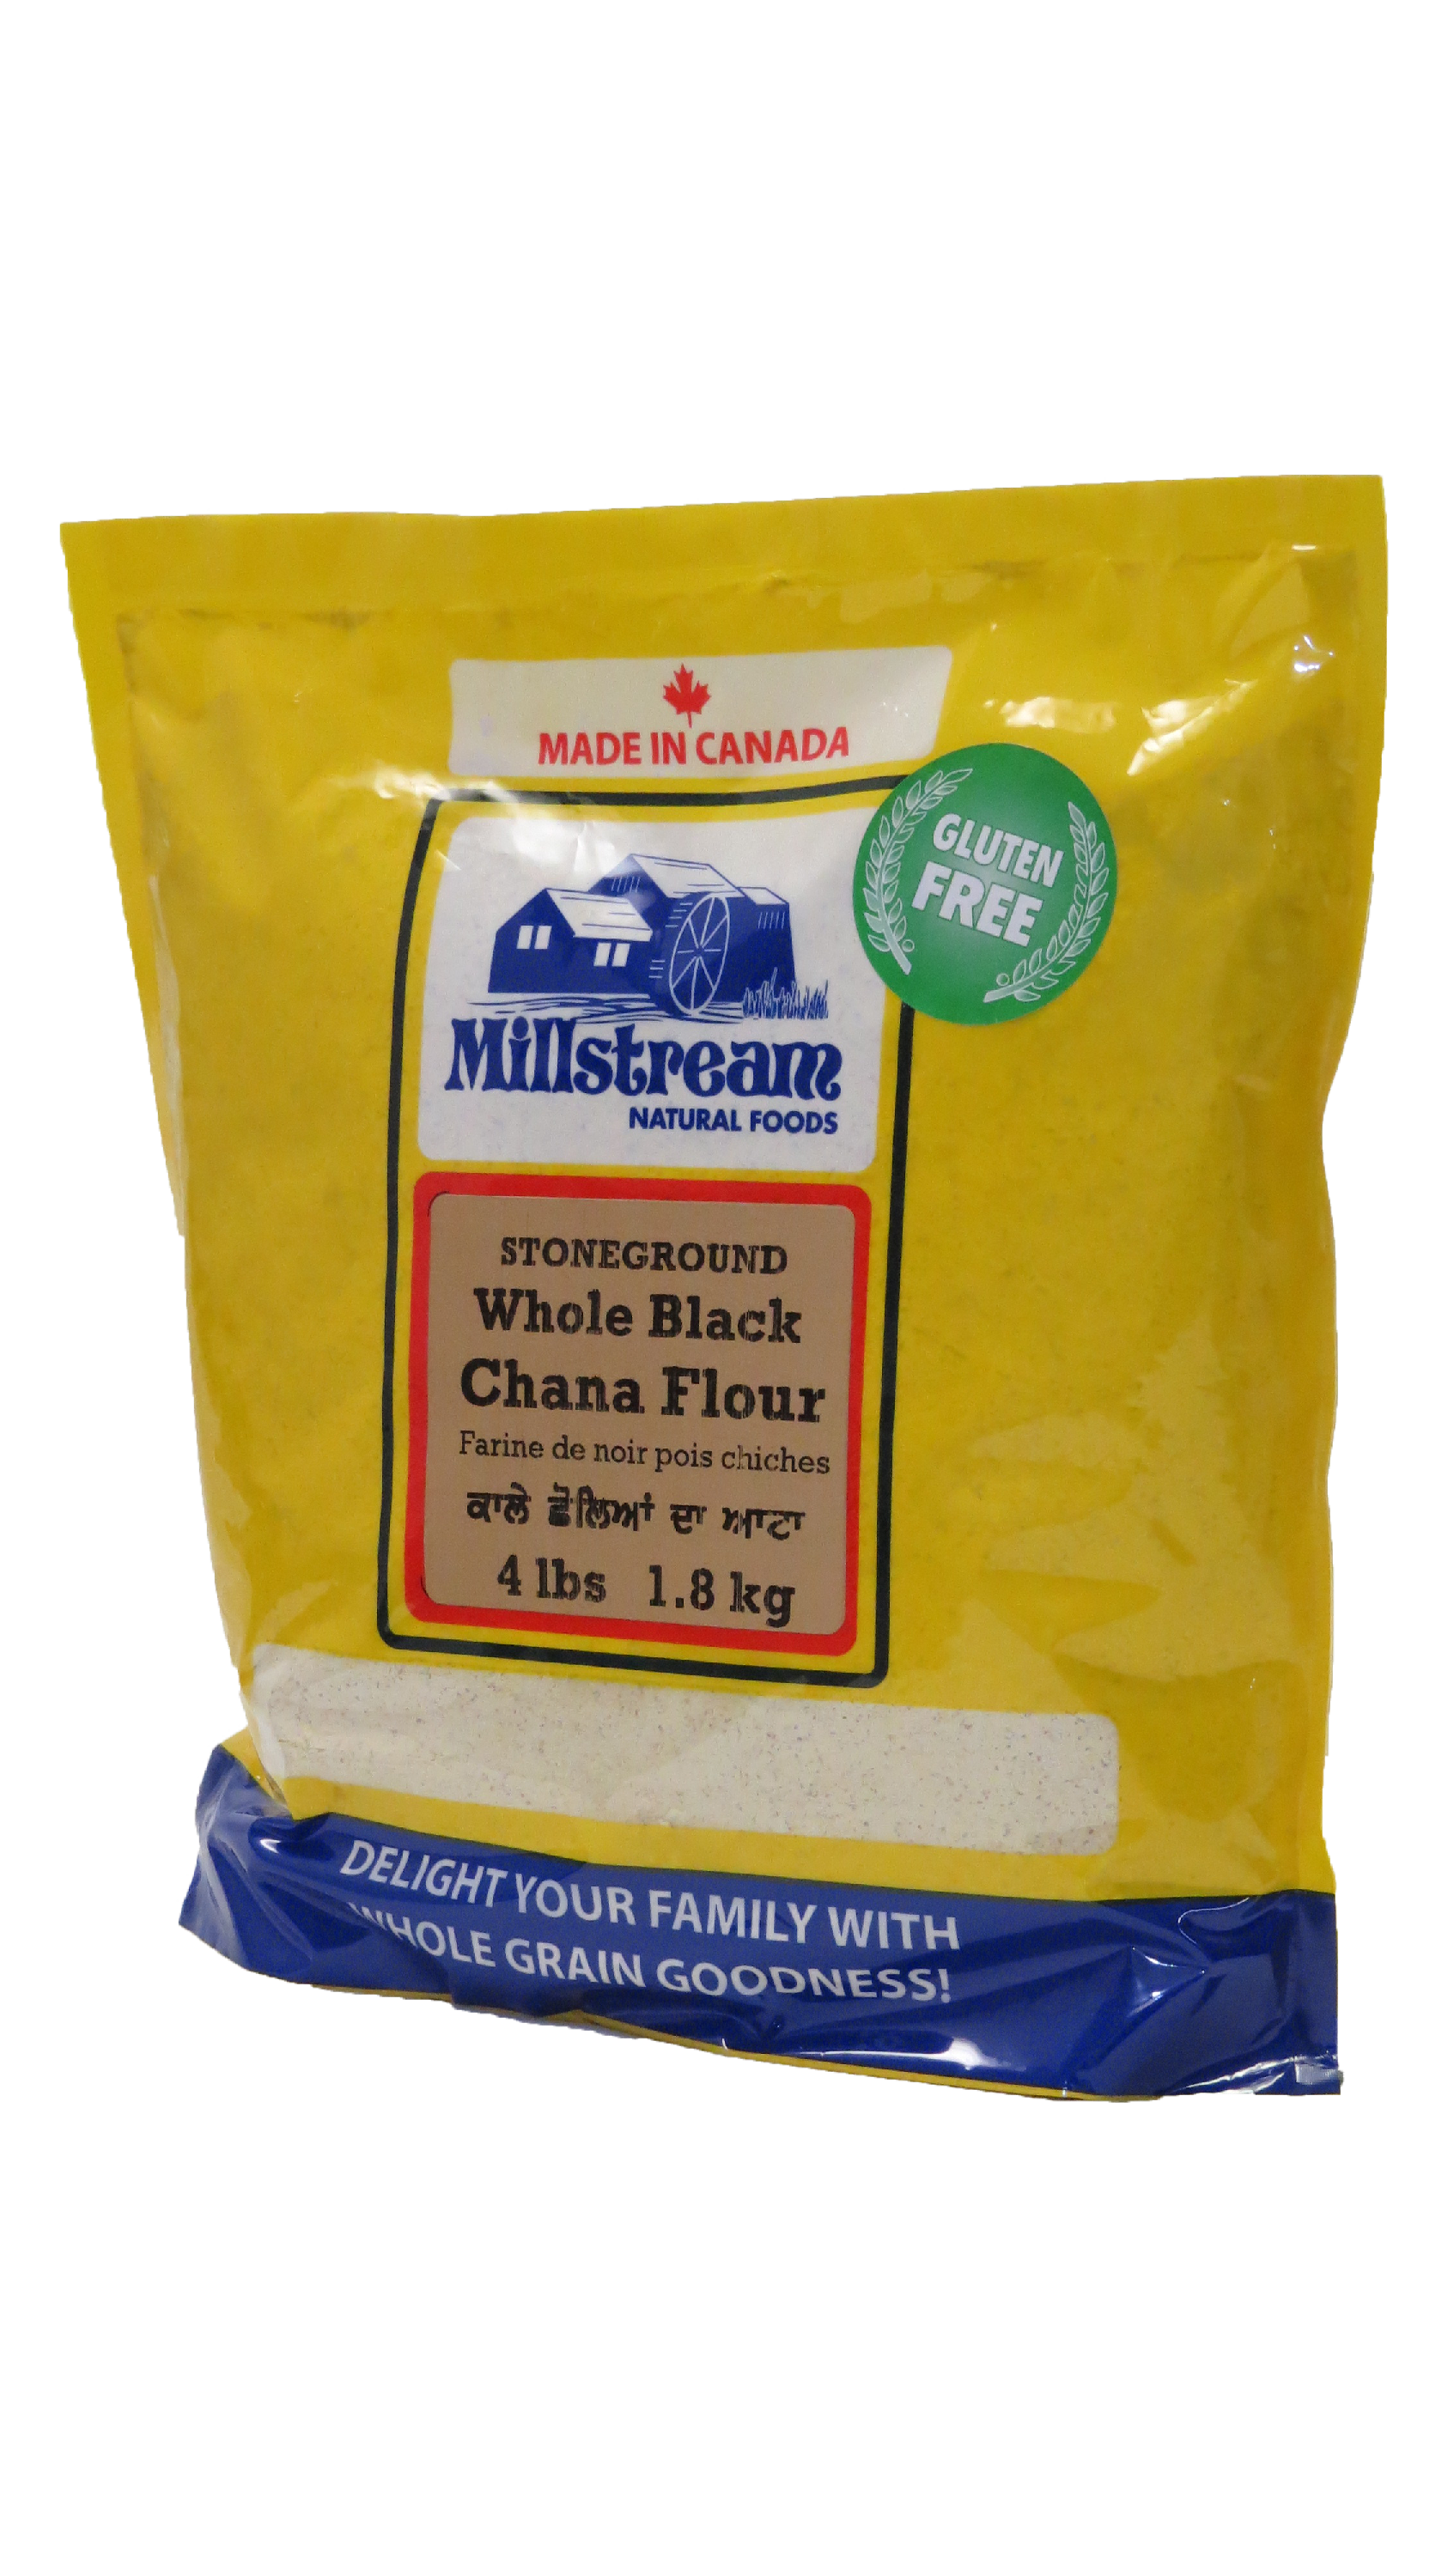 Whole Black Chana Flour